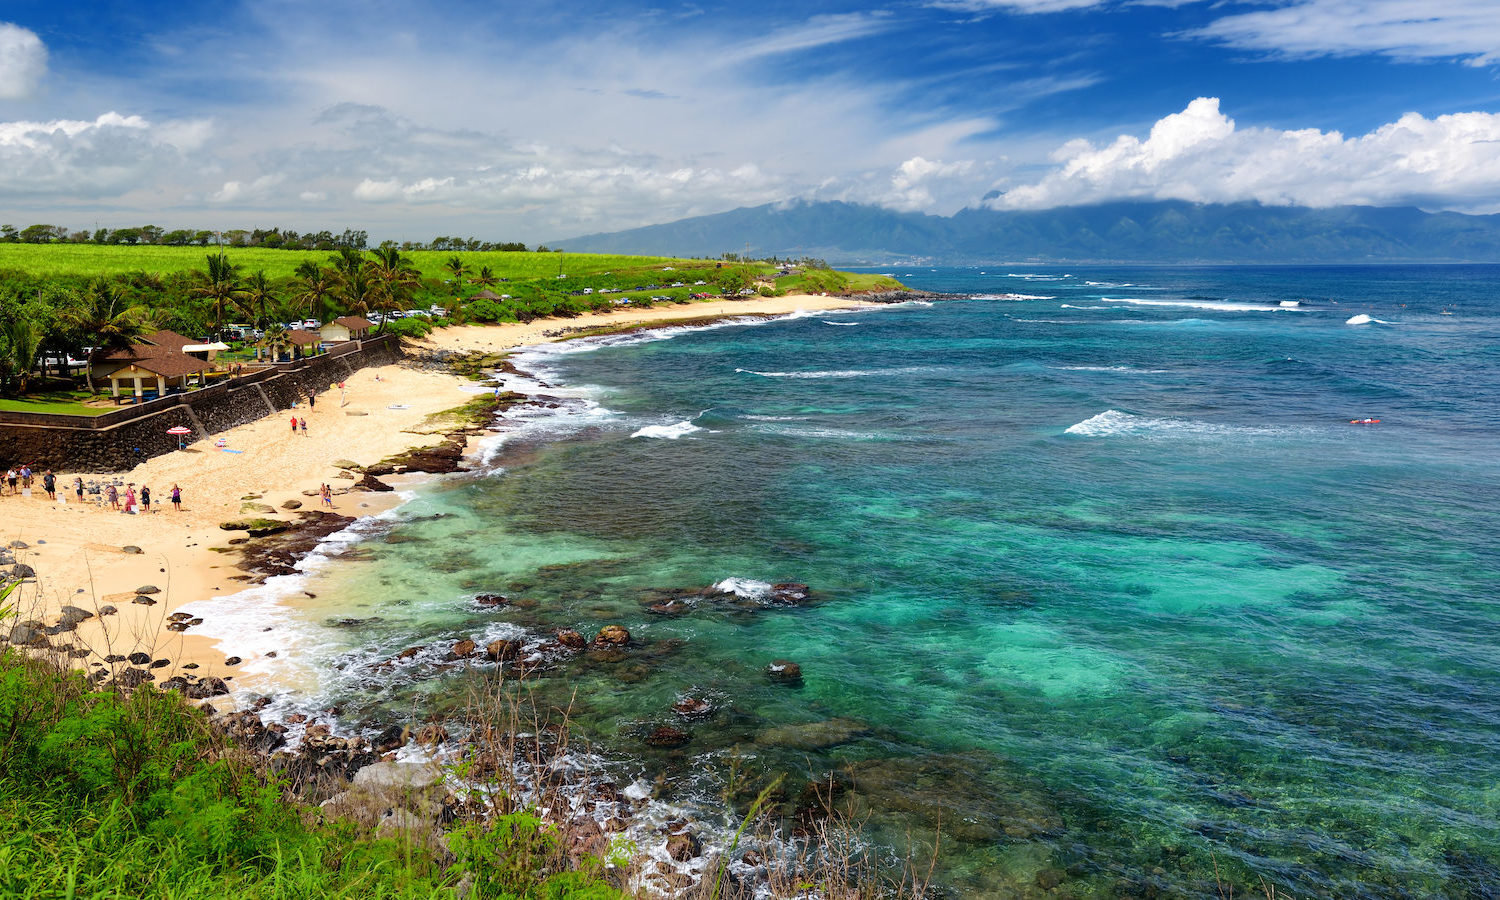 Hookipa Beach, Maui GyPSy Guide Narrated Driving Tour App